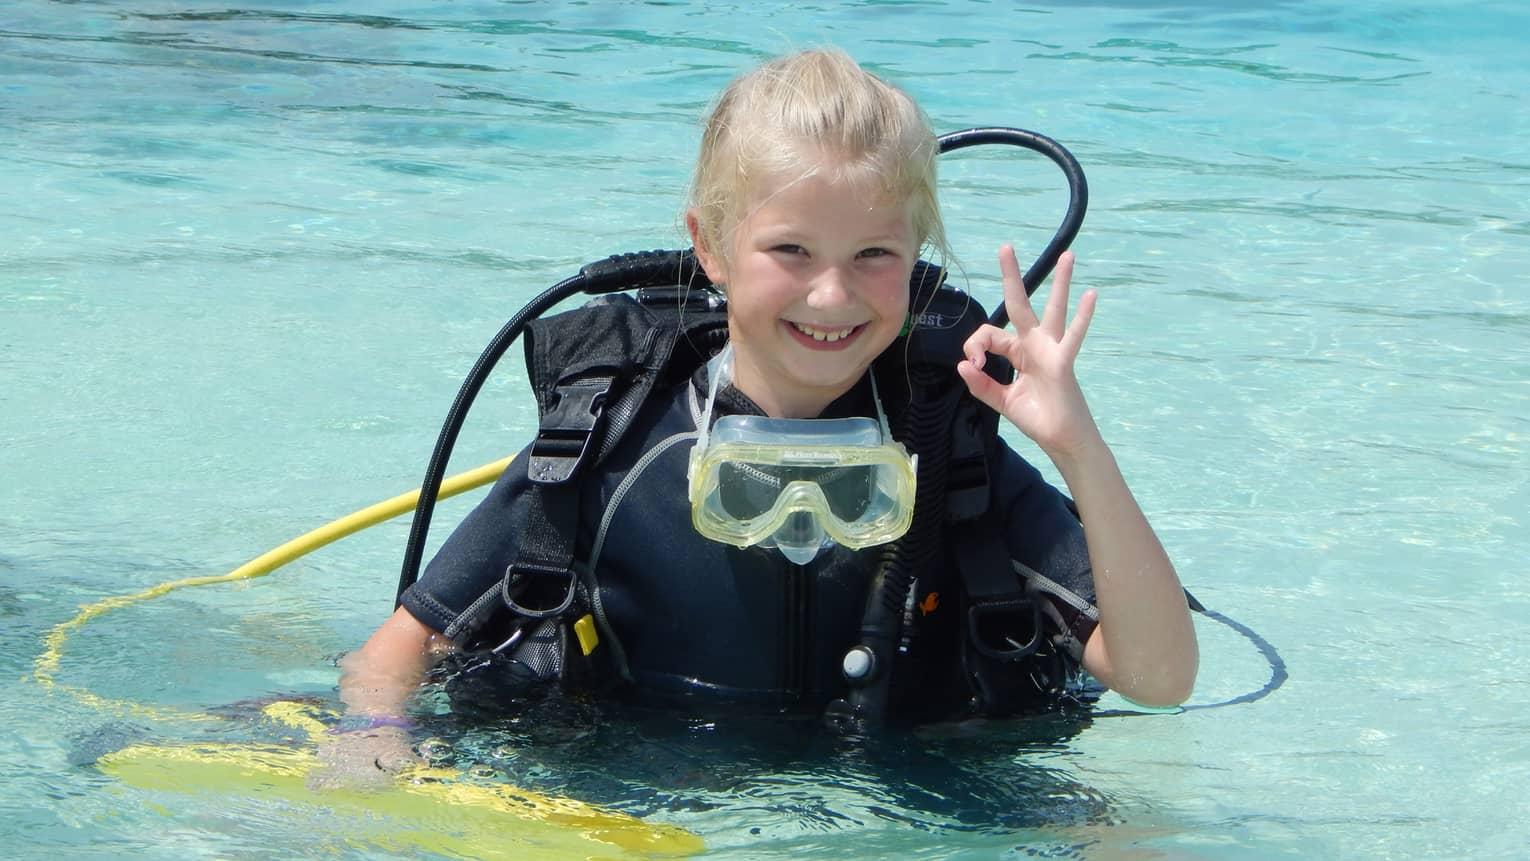 Young girl wearing scuba diving gear in water smiles, gives hand signal